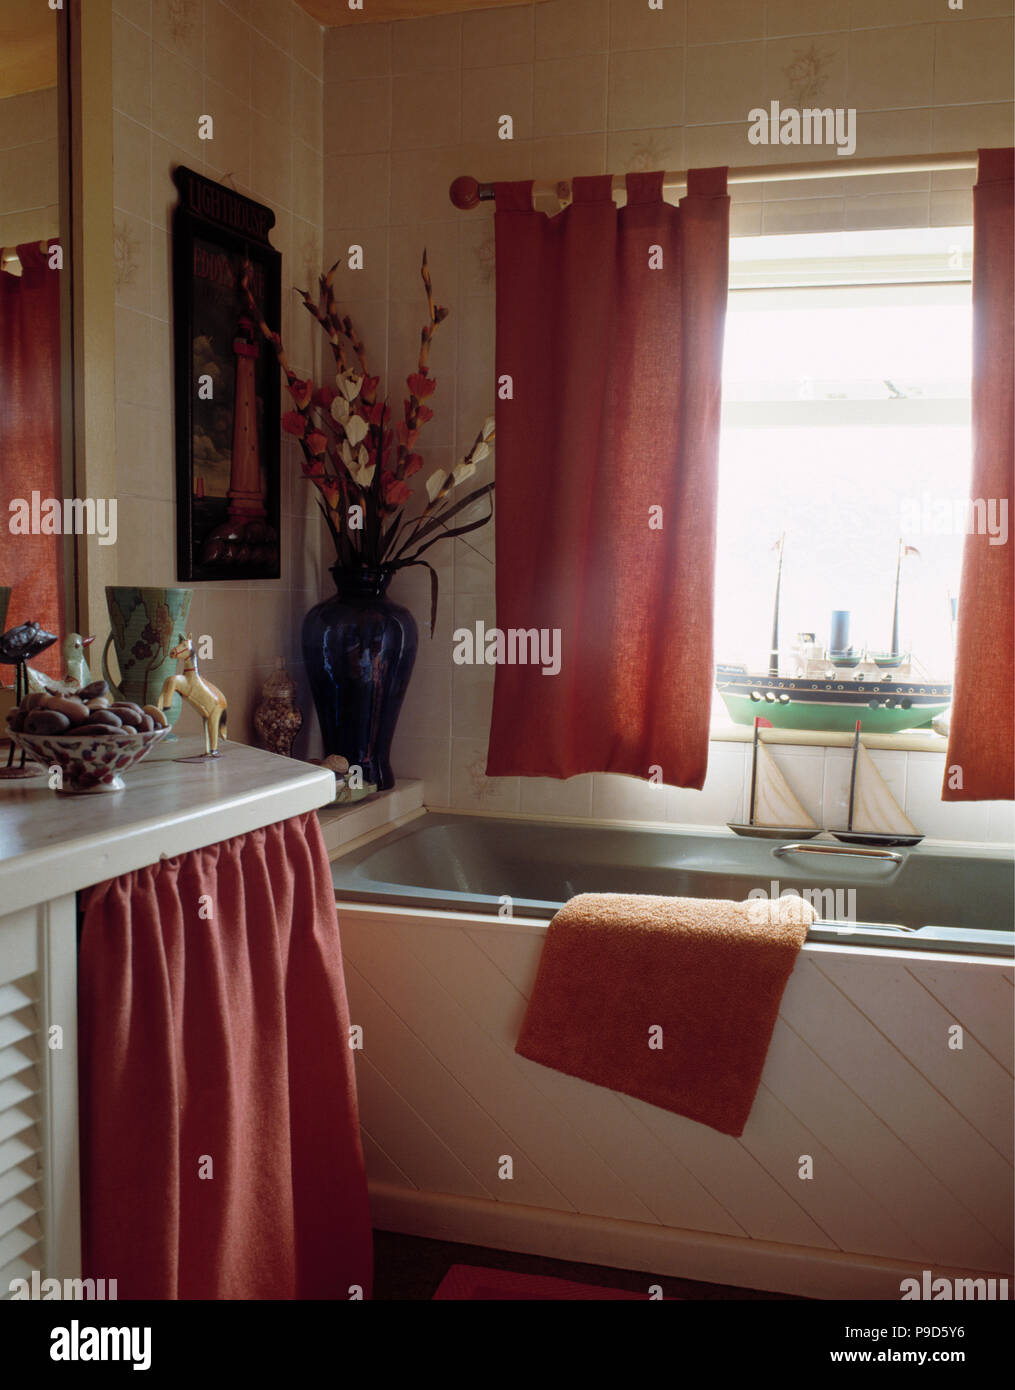 Pink Curtains On Window Above Grey Bath In Cottage Bathroom With Pink Curtain On Vanity Unit Stock Photo Alamy